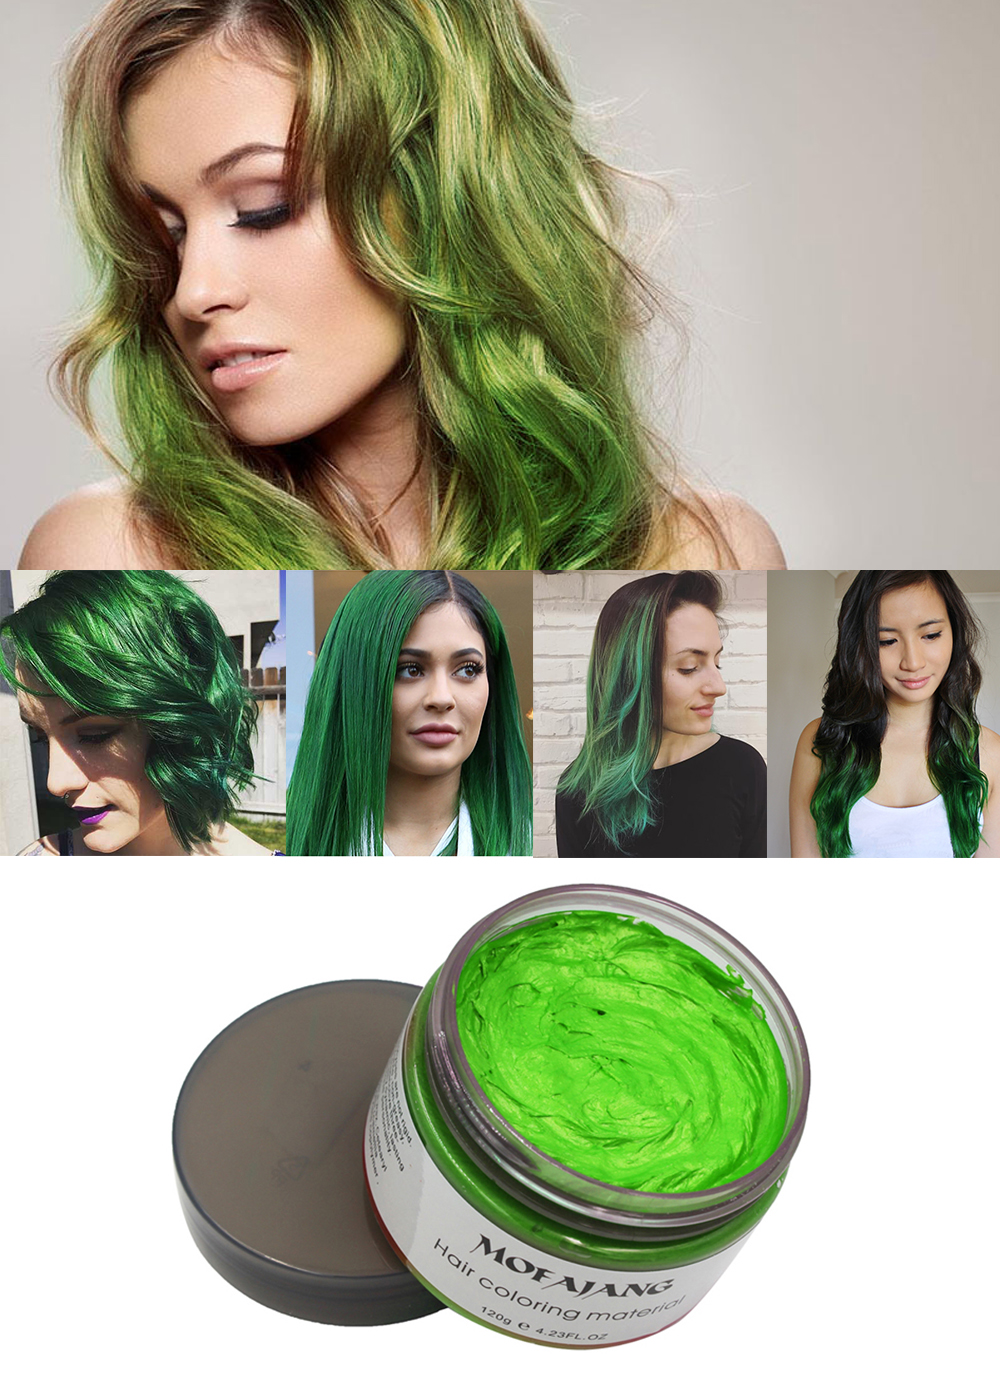 Green hair wax 13